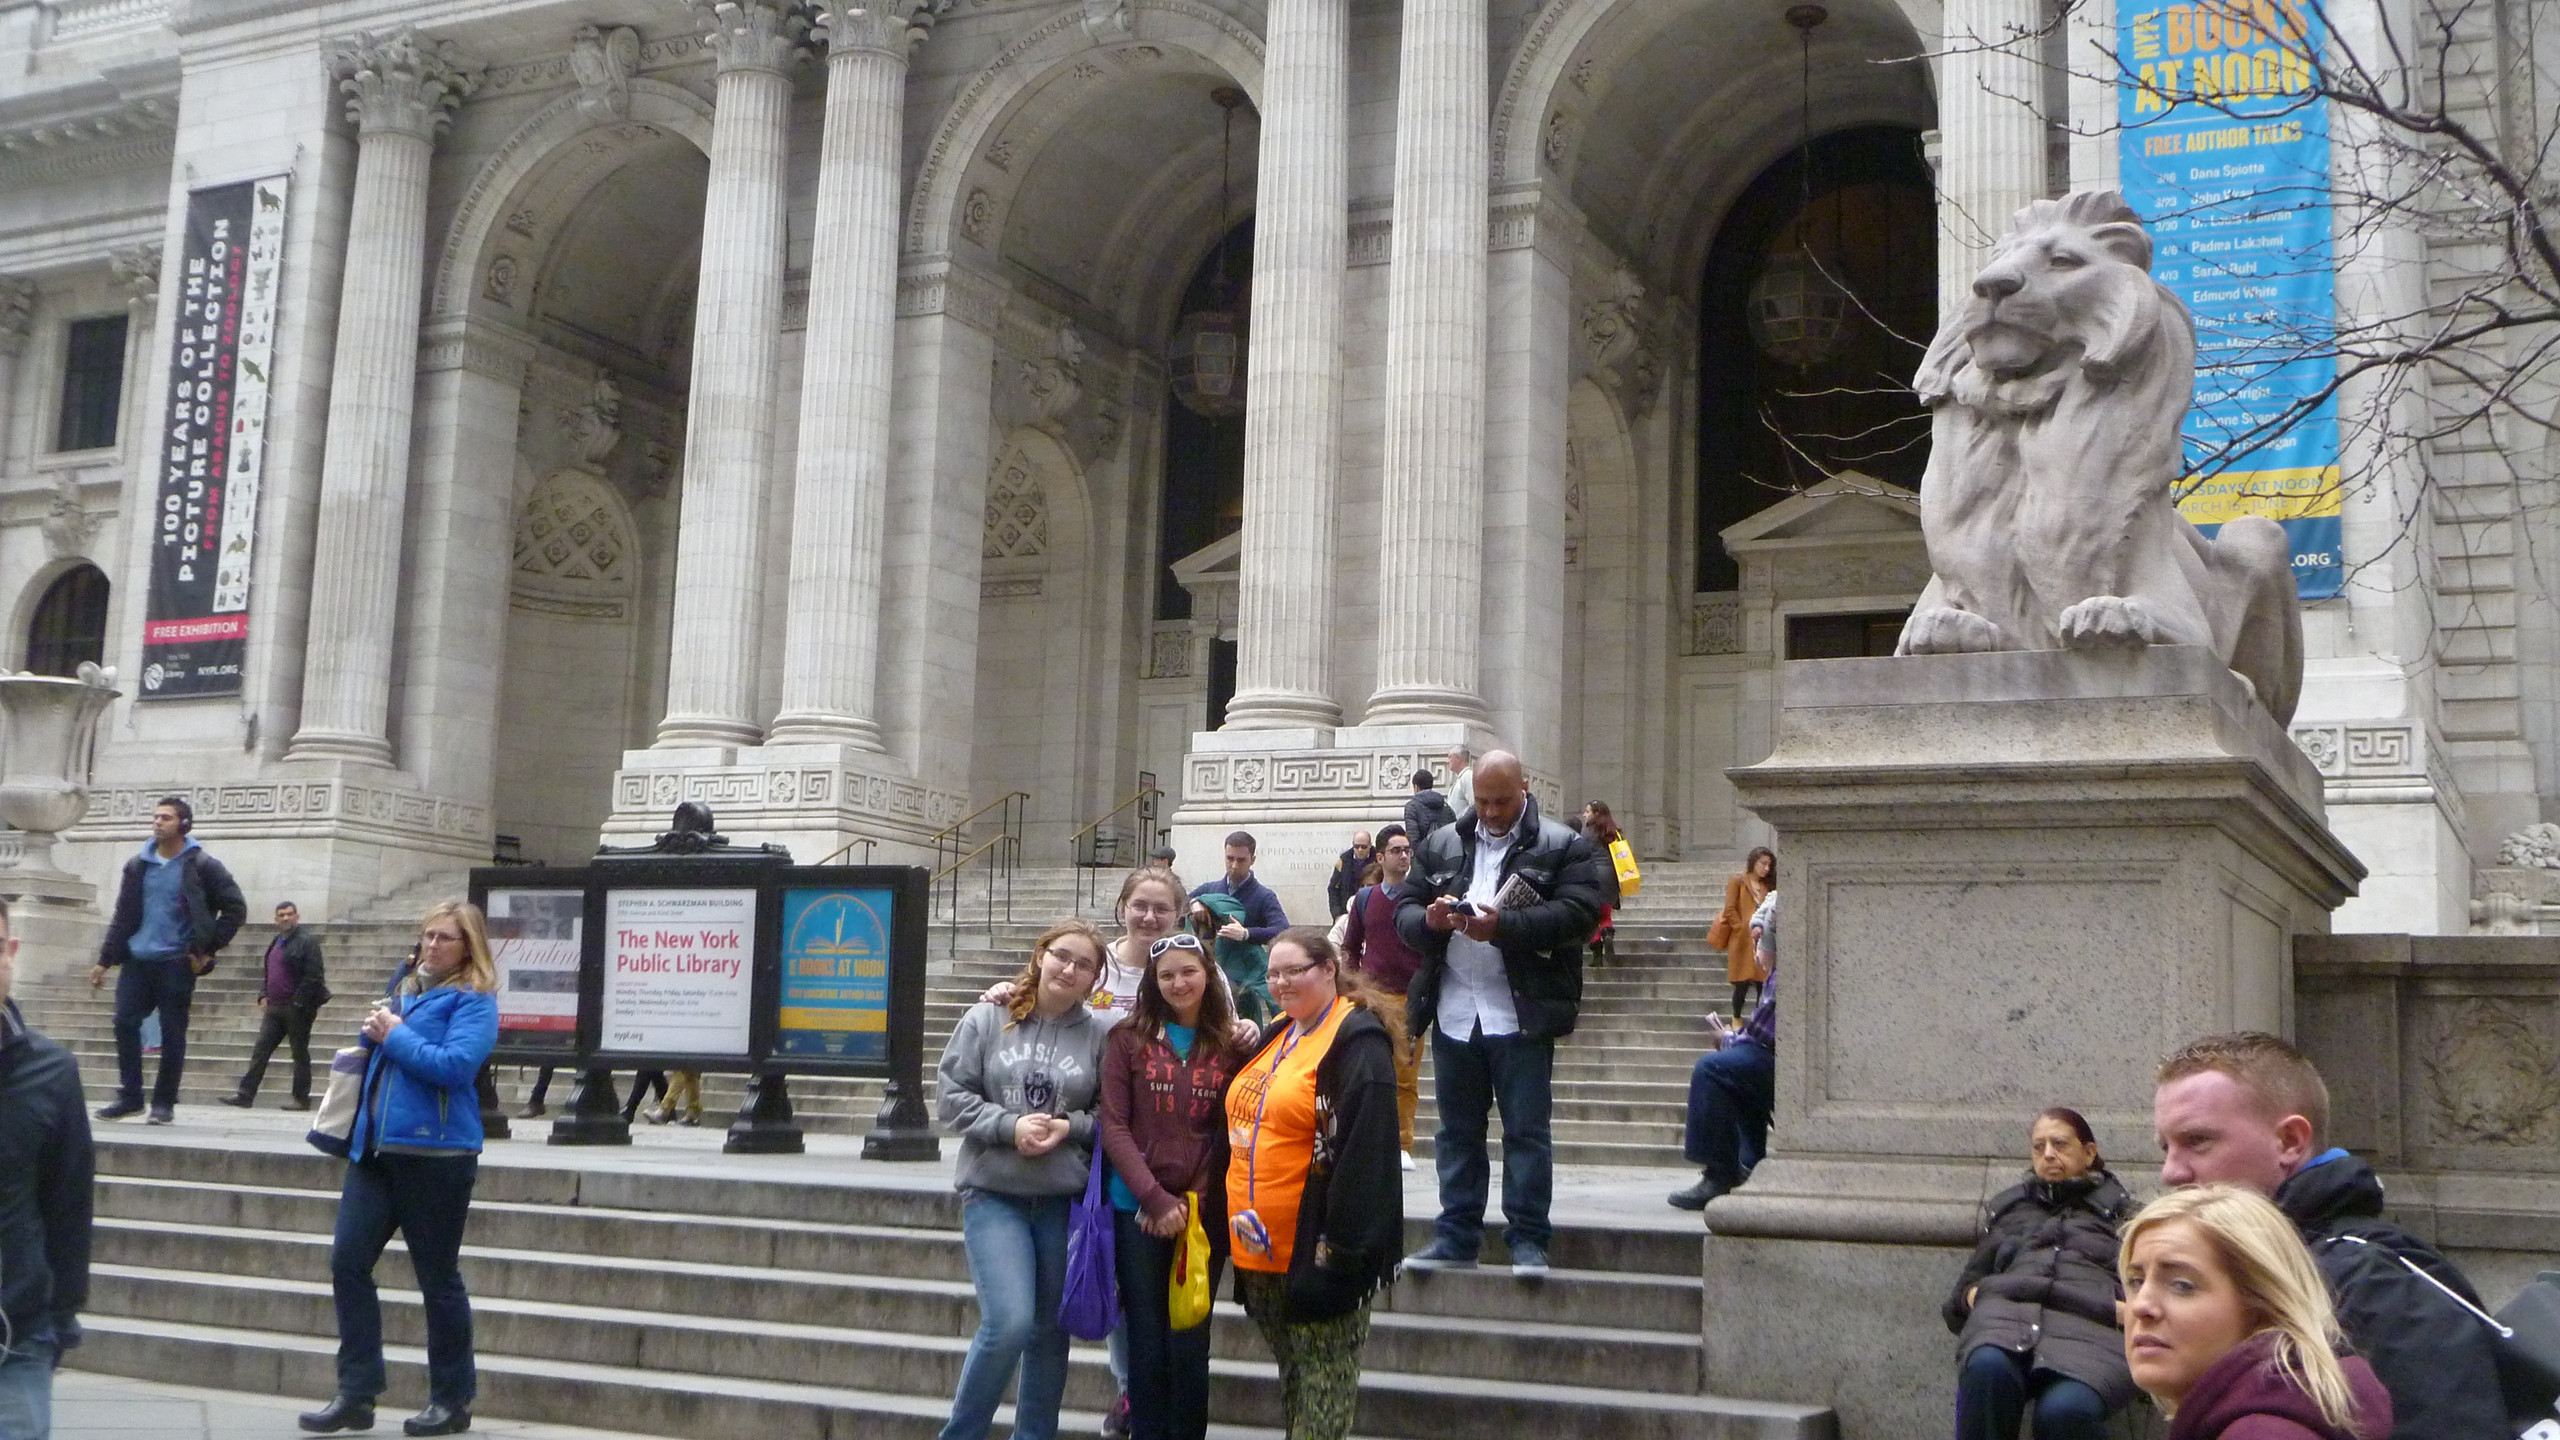 A few students on the steps of the famous New York Public Library